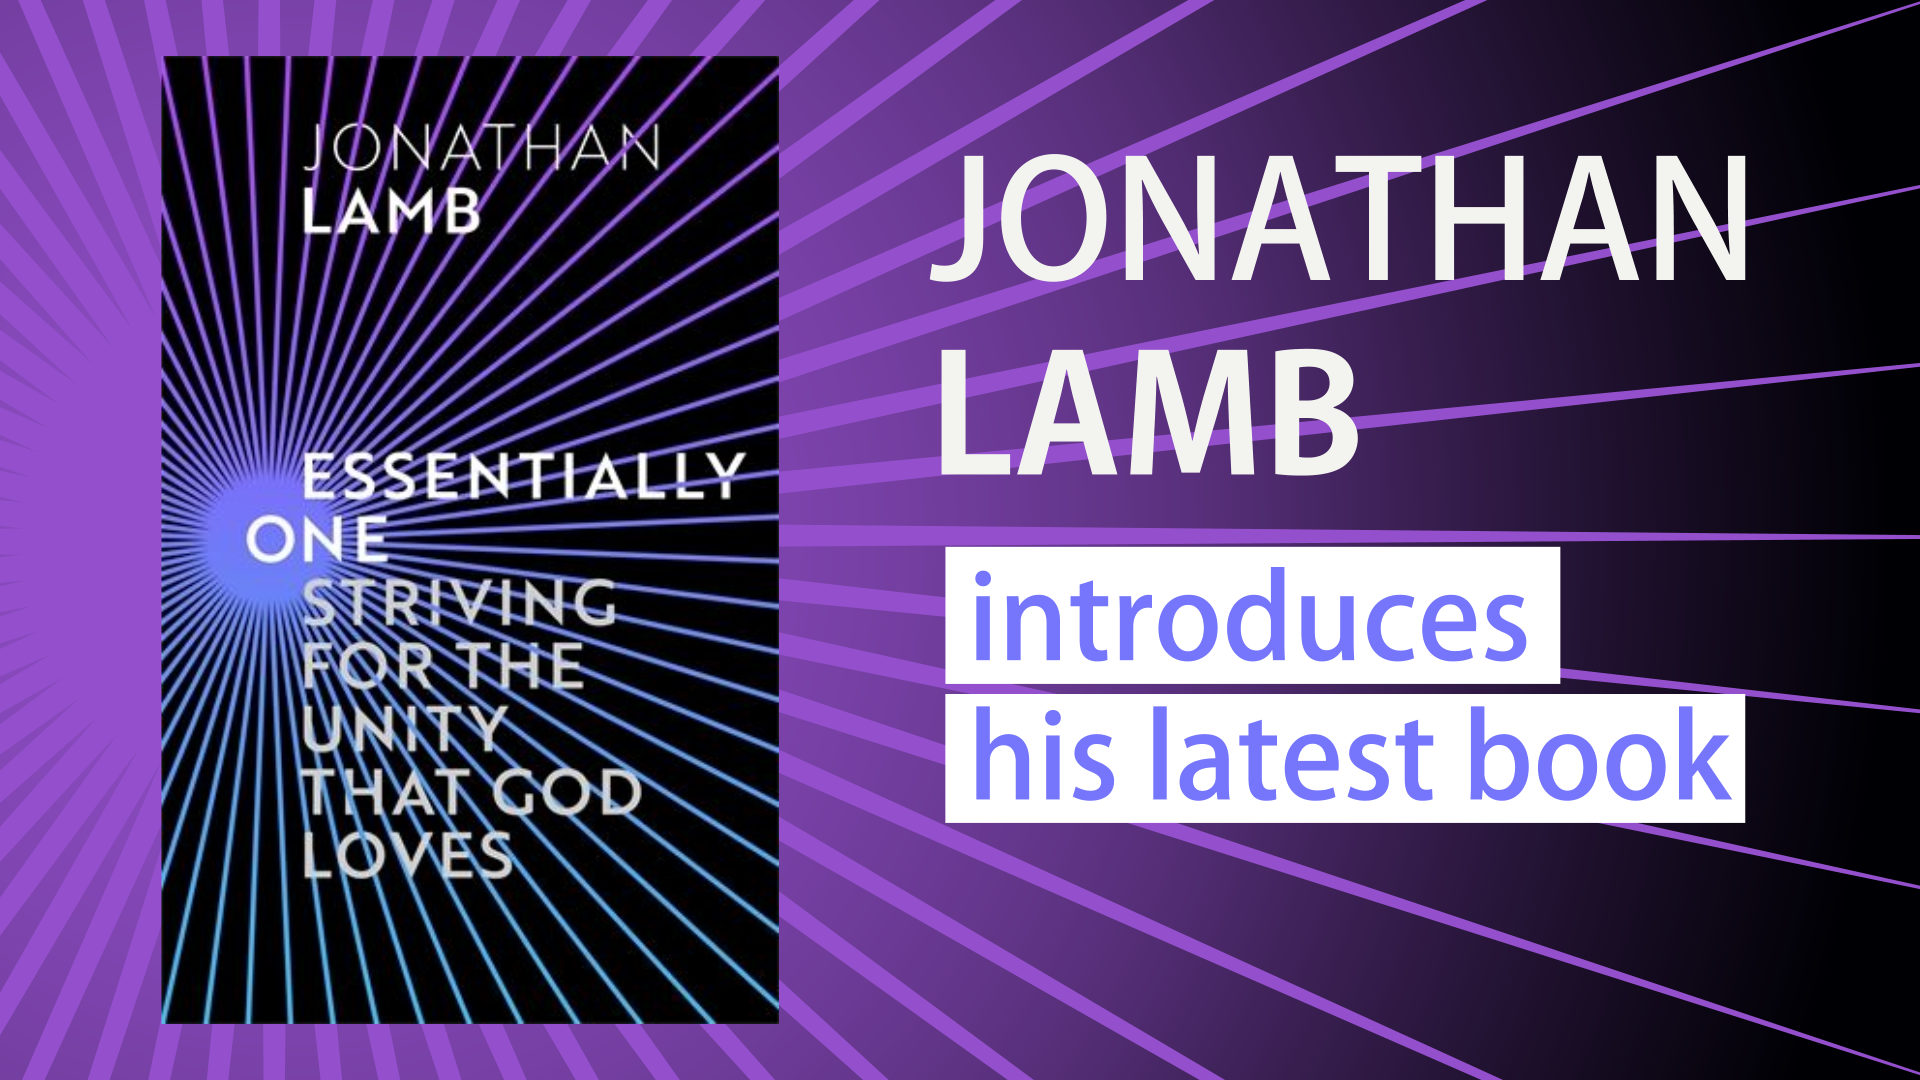 Essentially One - Jonathan Lamb introduces his latest book